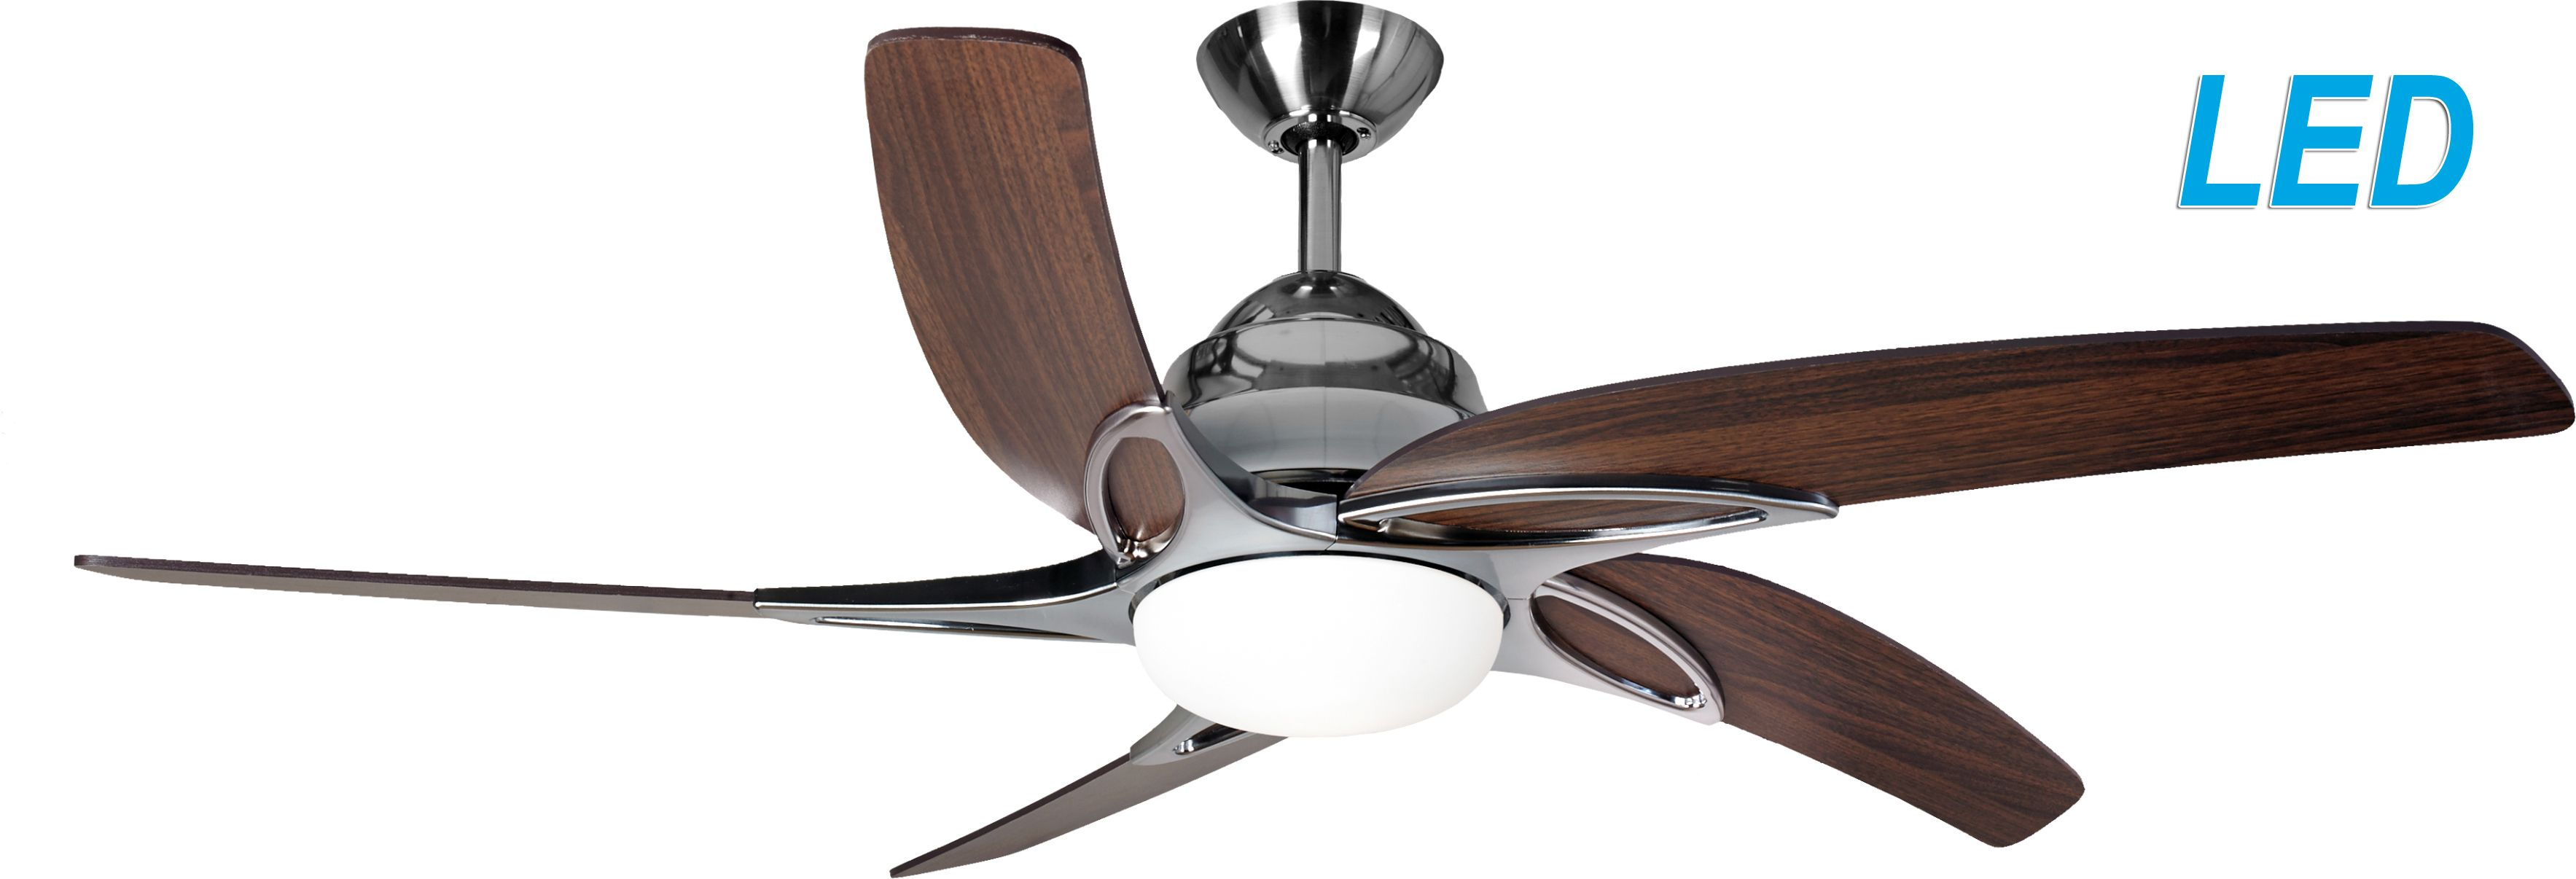 Fantasia Viper 44 Stainless Steel with Dark Oak Blades Ceiling Fan